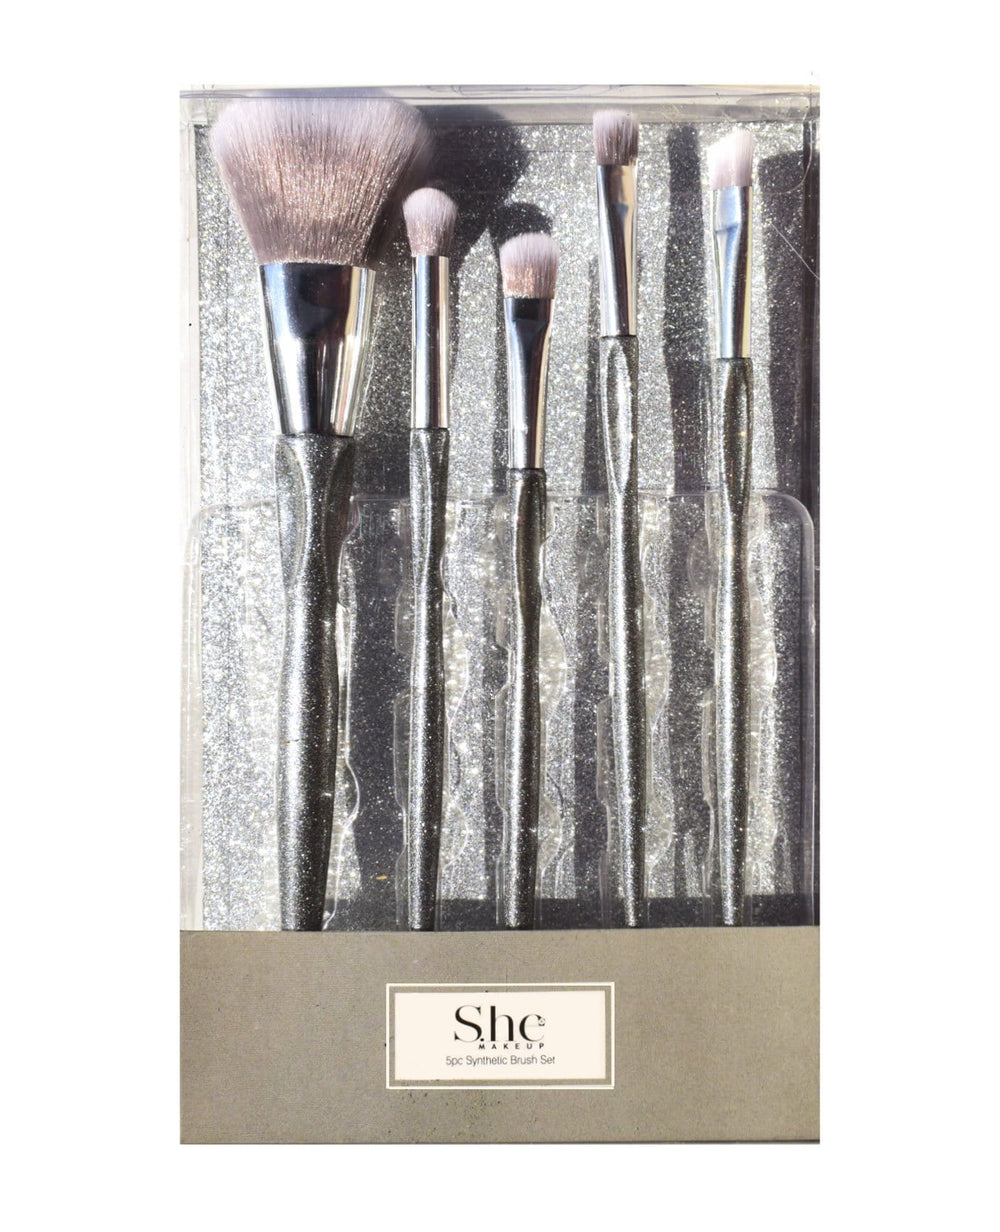 S.he Silver Brush Set